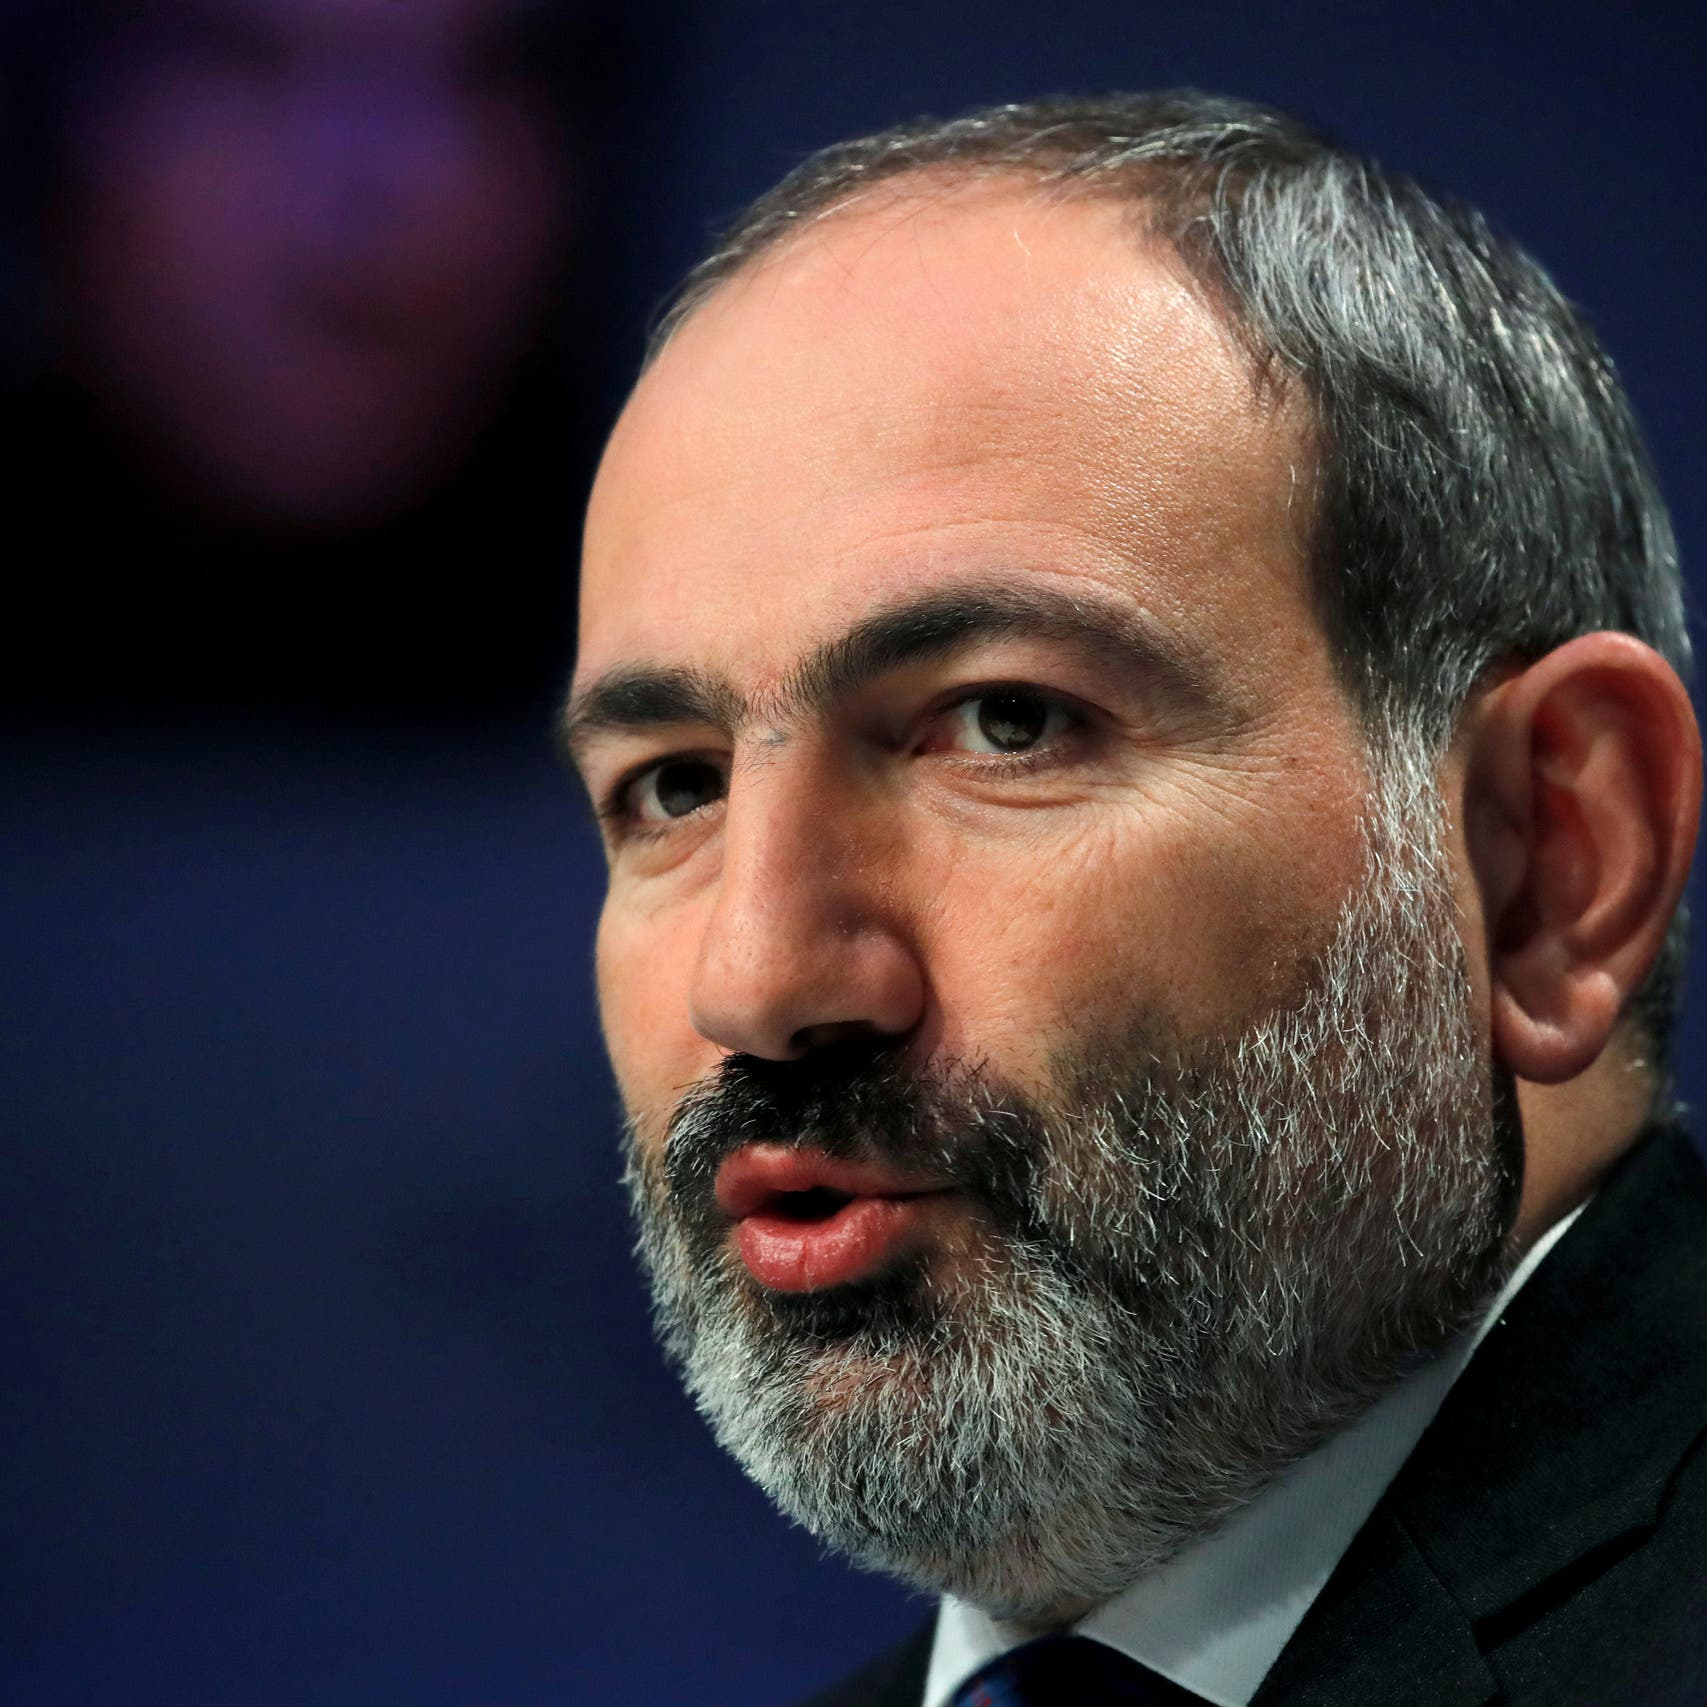 Armenians all over the world welcome US recognition of genocide: PM Pashinyan